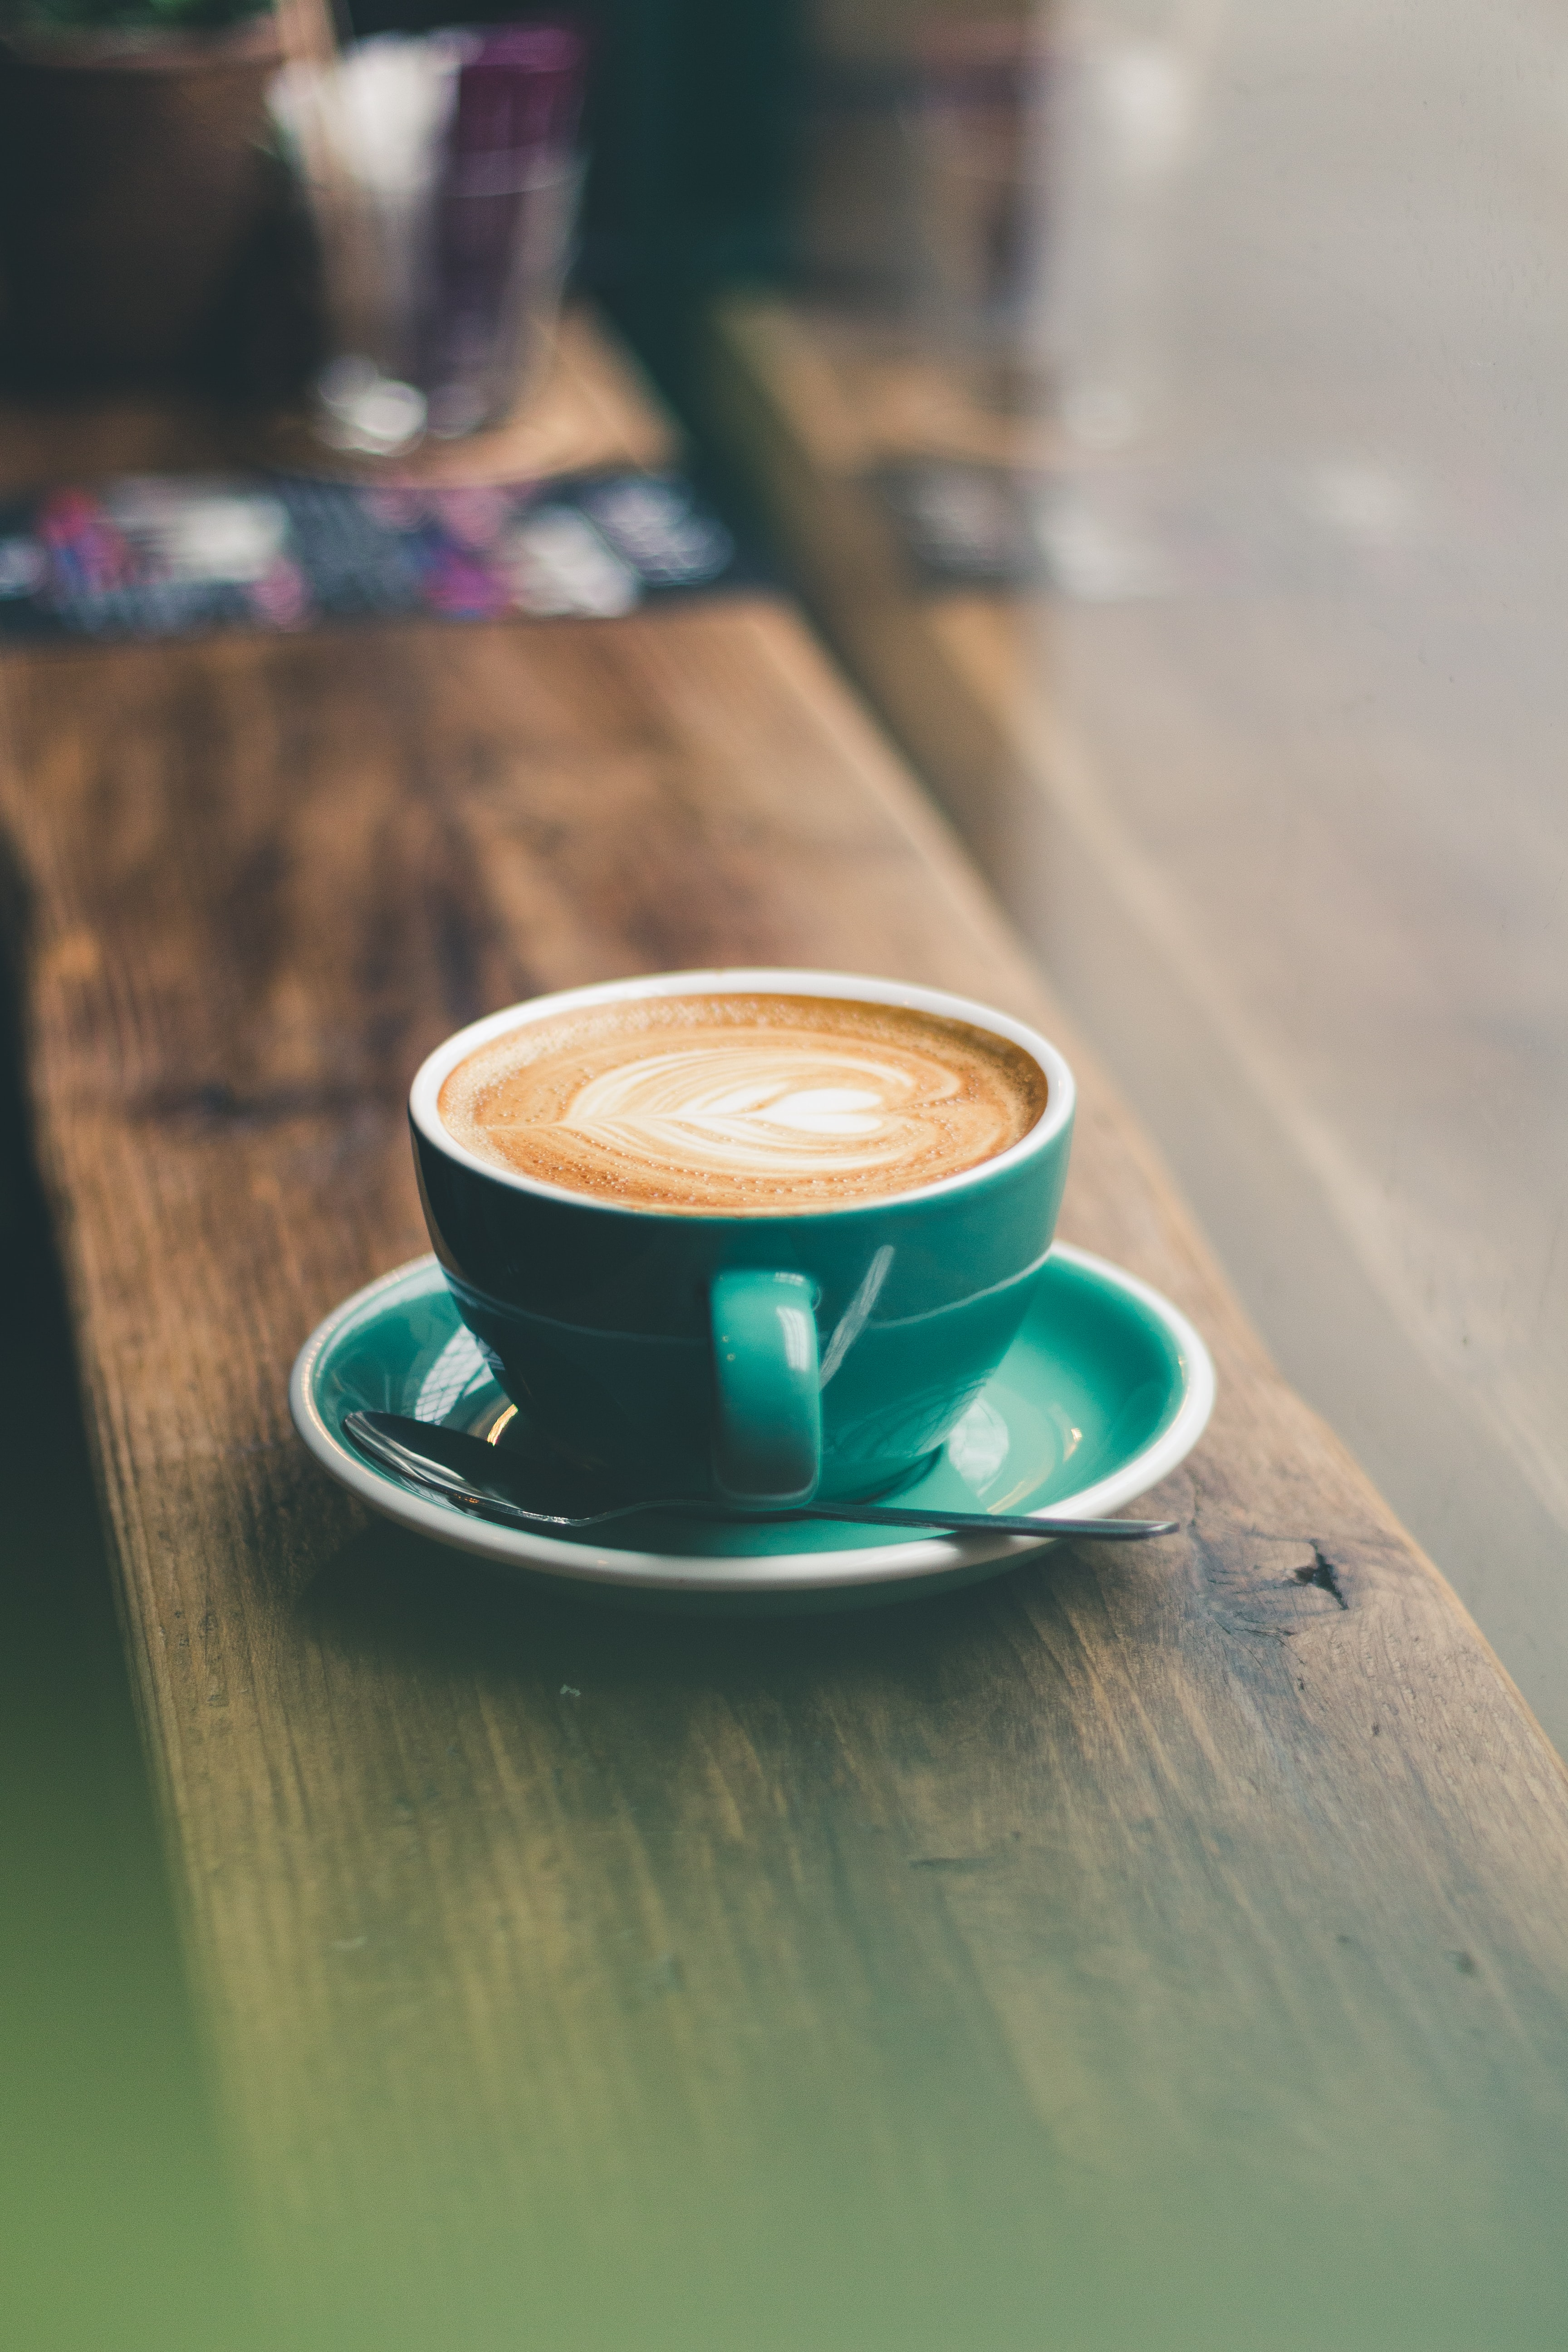 100 Coffee Cup Pictures Hd Download Free Images